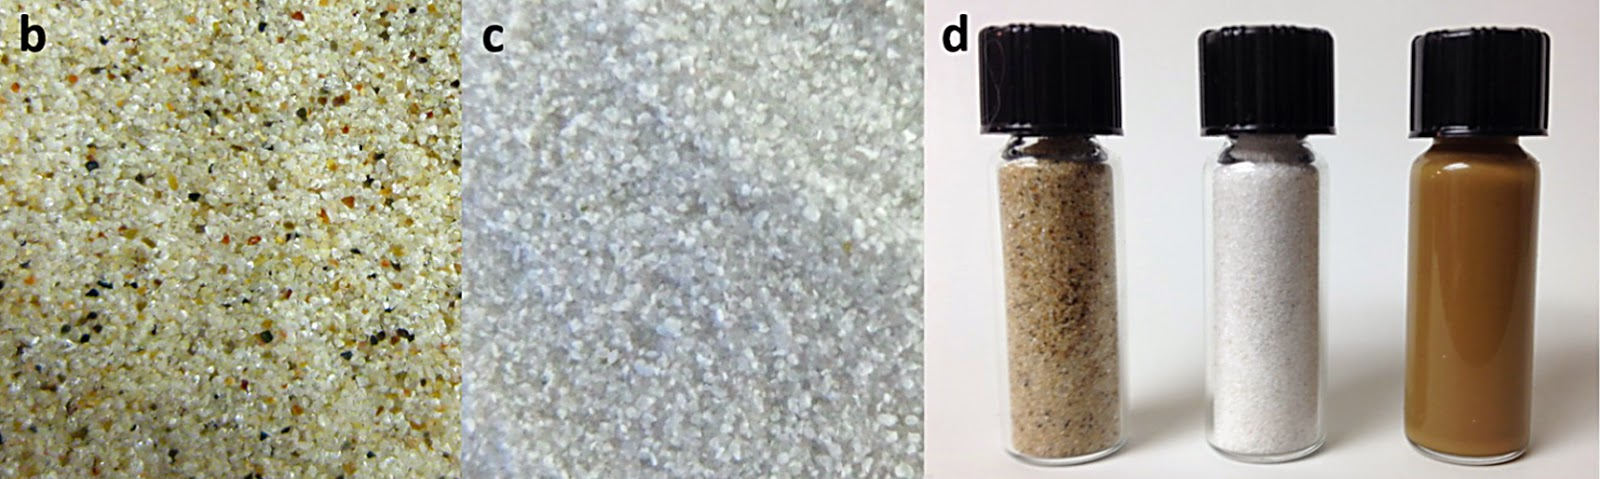 sand to pure nano-silicon